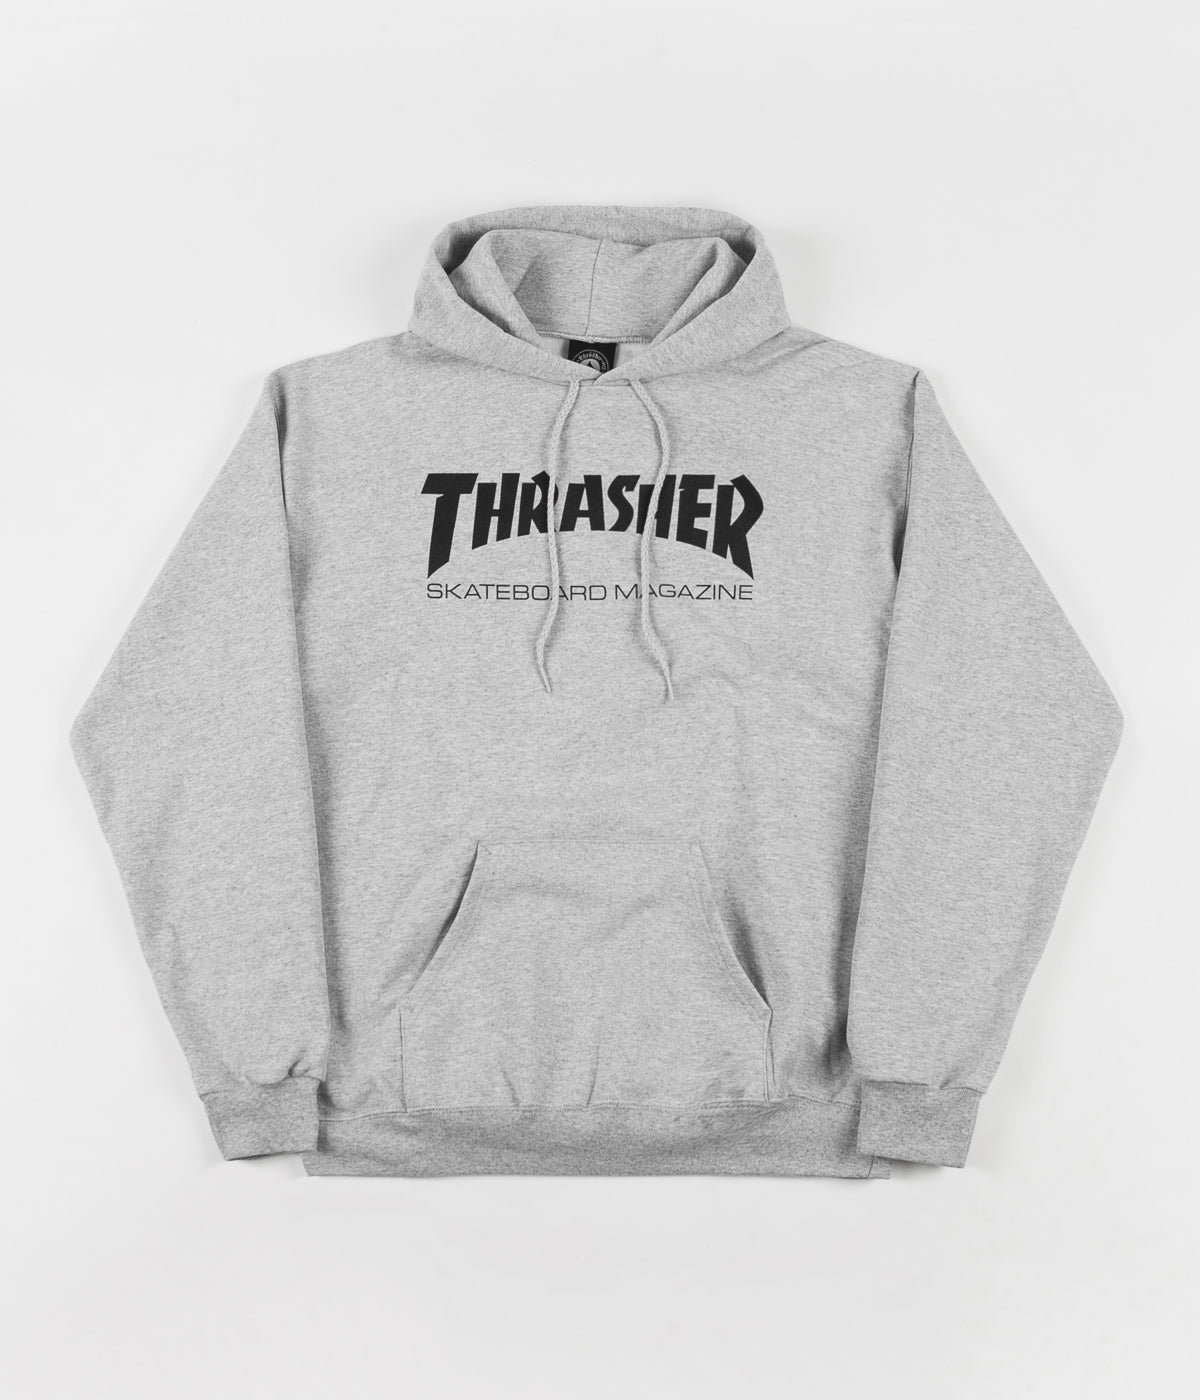 1a745d598c96 Thrasher Skate Mag Logo Hooded Sweatshirt - Heather Grey | Flatspot